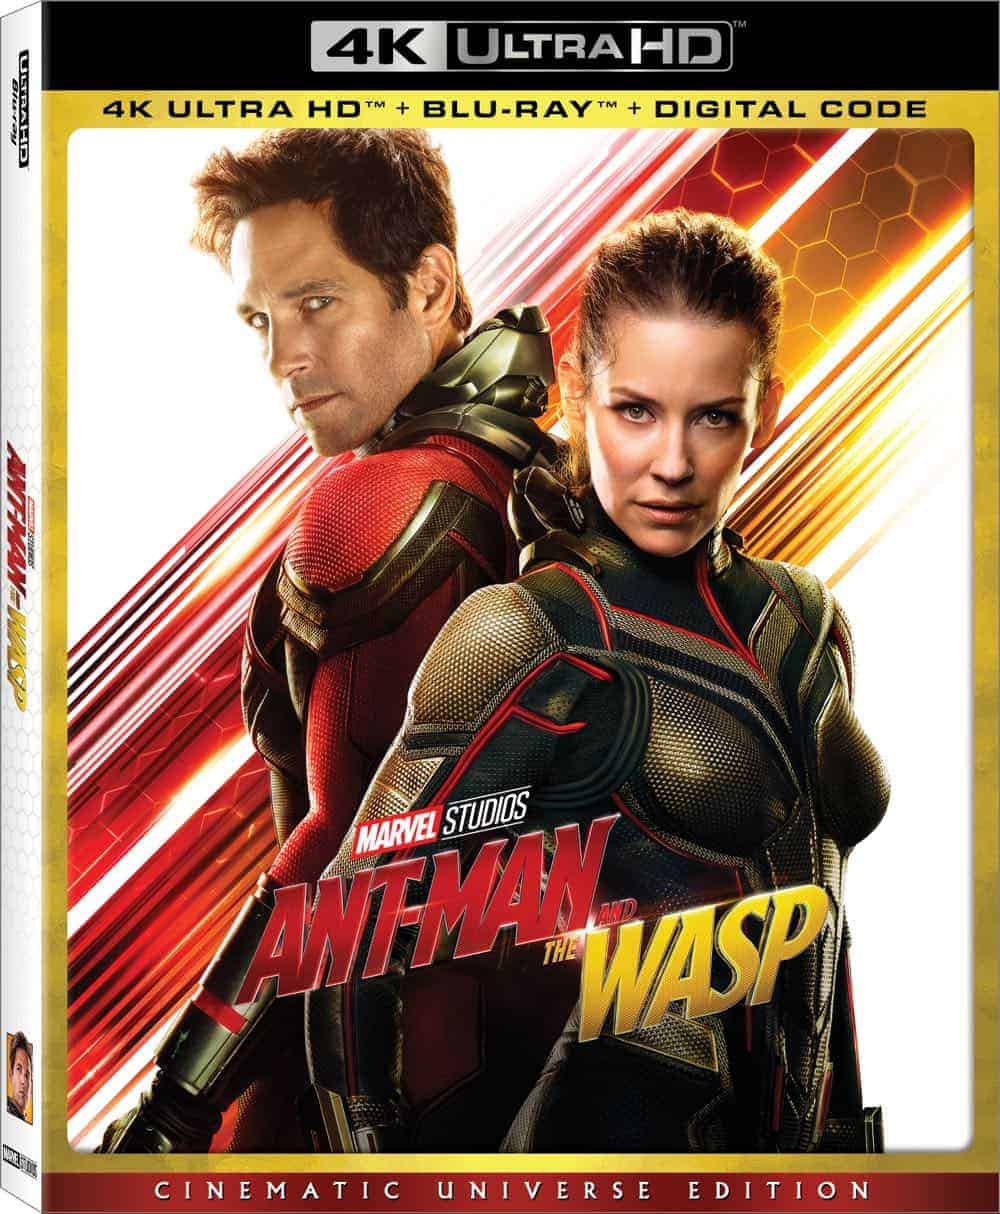 Ant Man Wasp 6.75 UHD US